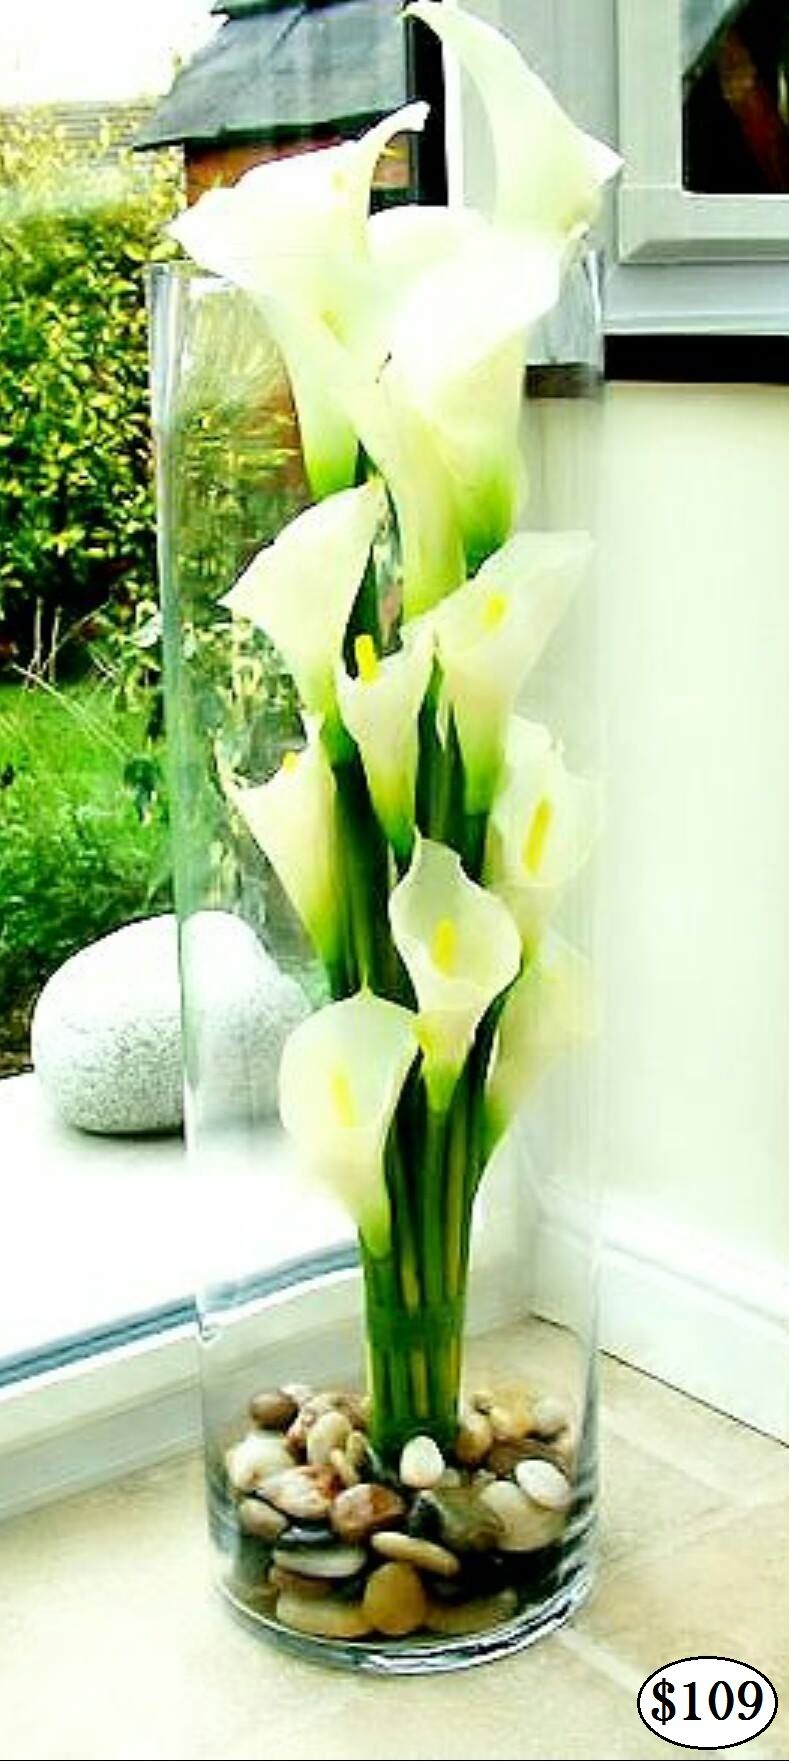 White calla lily real touch flower arrangements look and feel real white calla lily real touch flower arrangements look and feel real and are permanently set hard in a clear artificial water guaranteed to look fresh izmirmasajfo